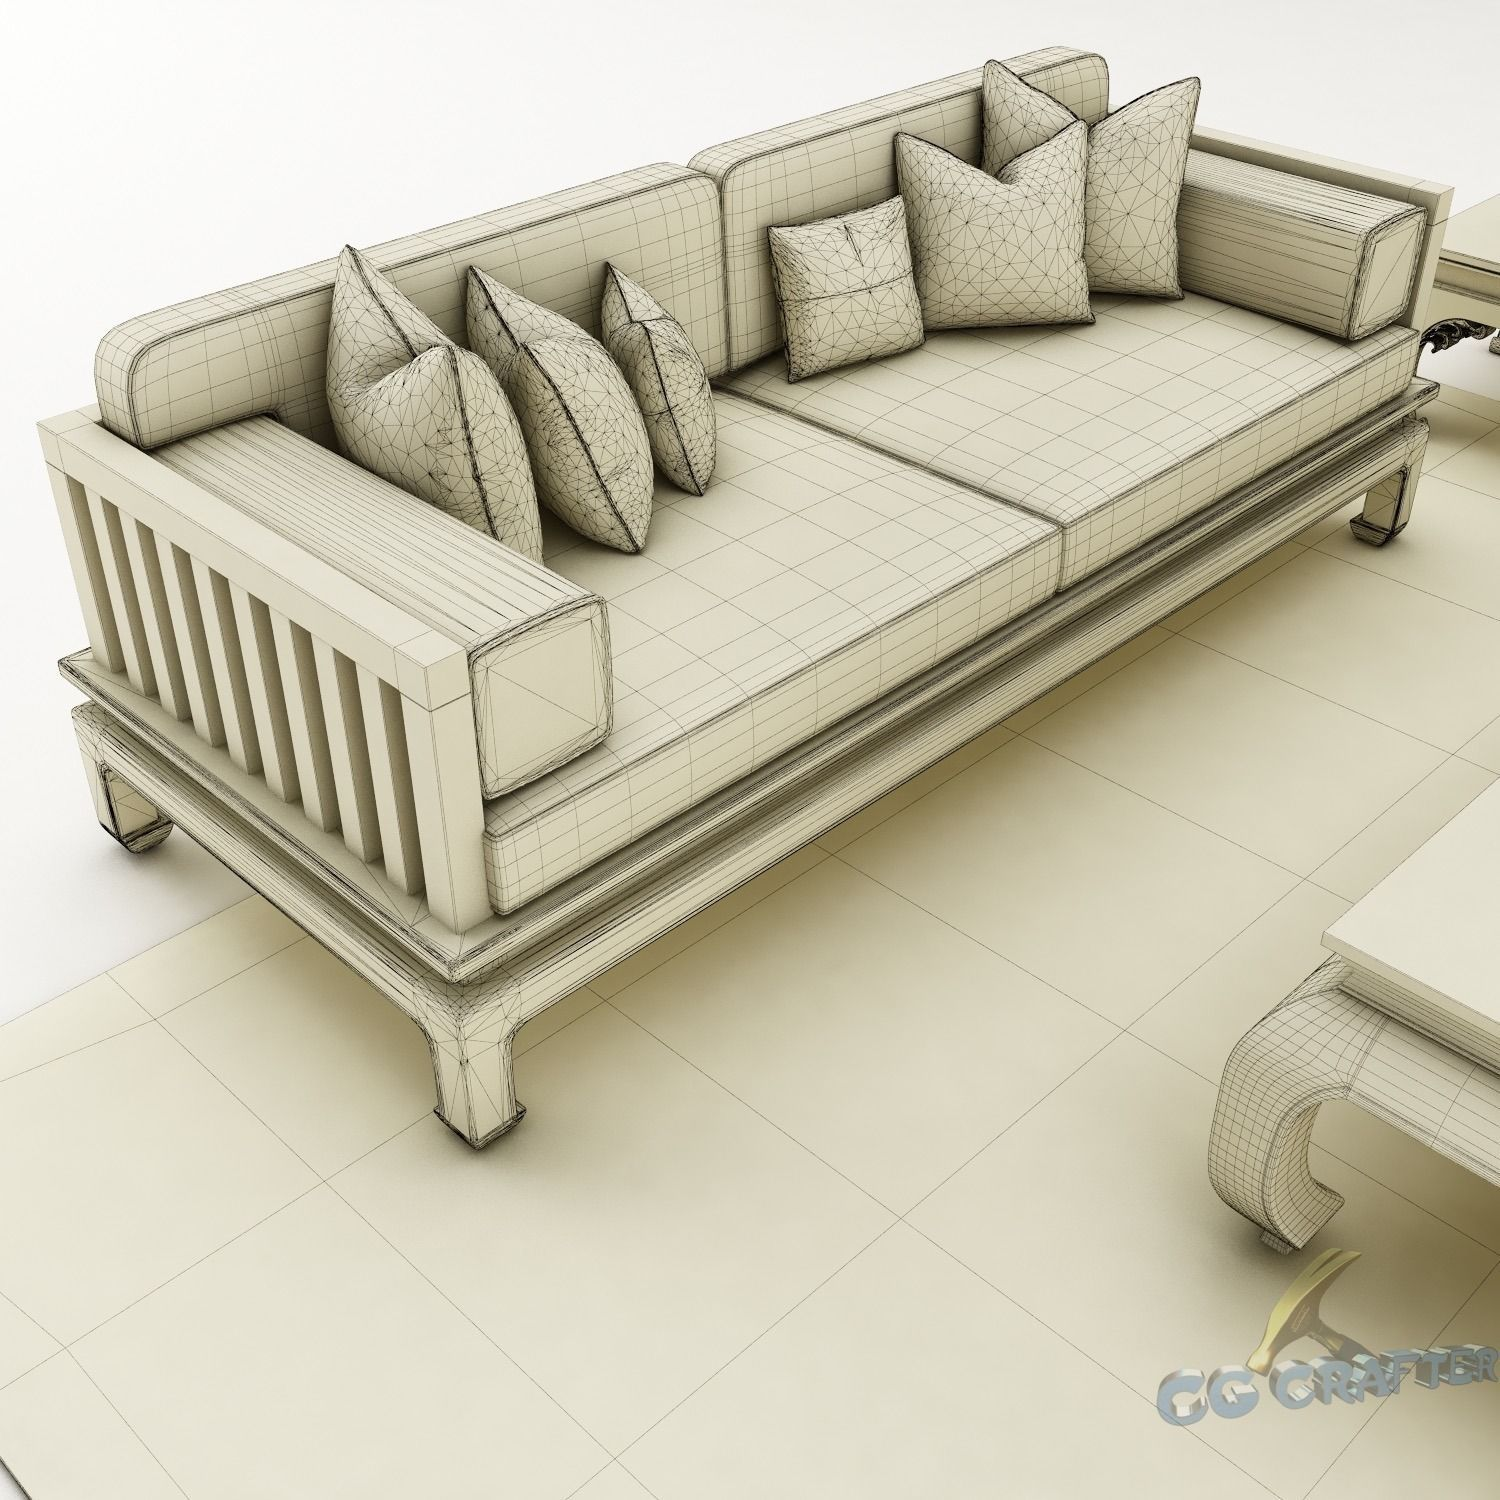 Sofa set 068 3d model max obj 3ds fbx mtl for Sofa 3d model